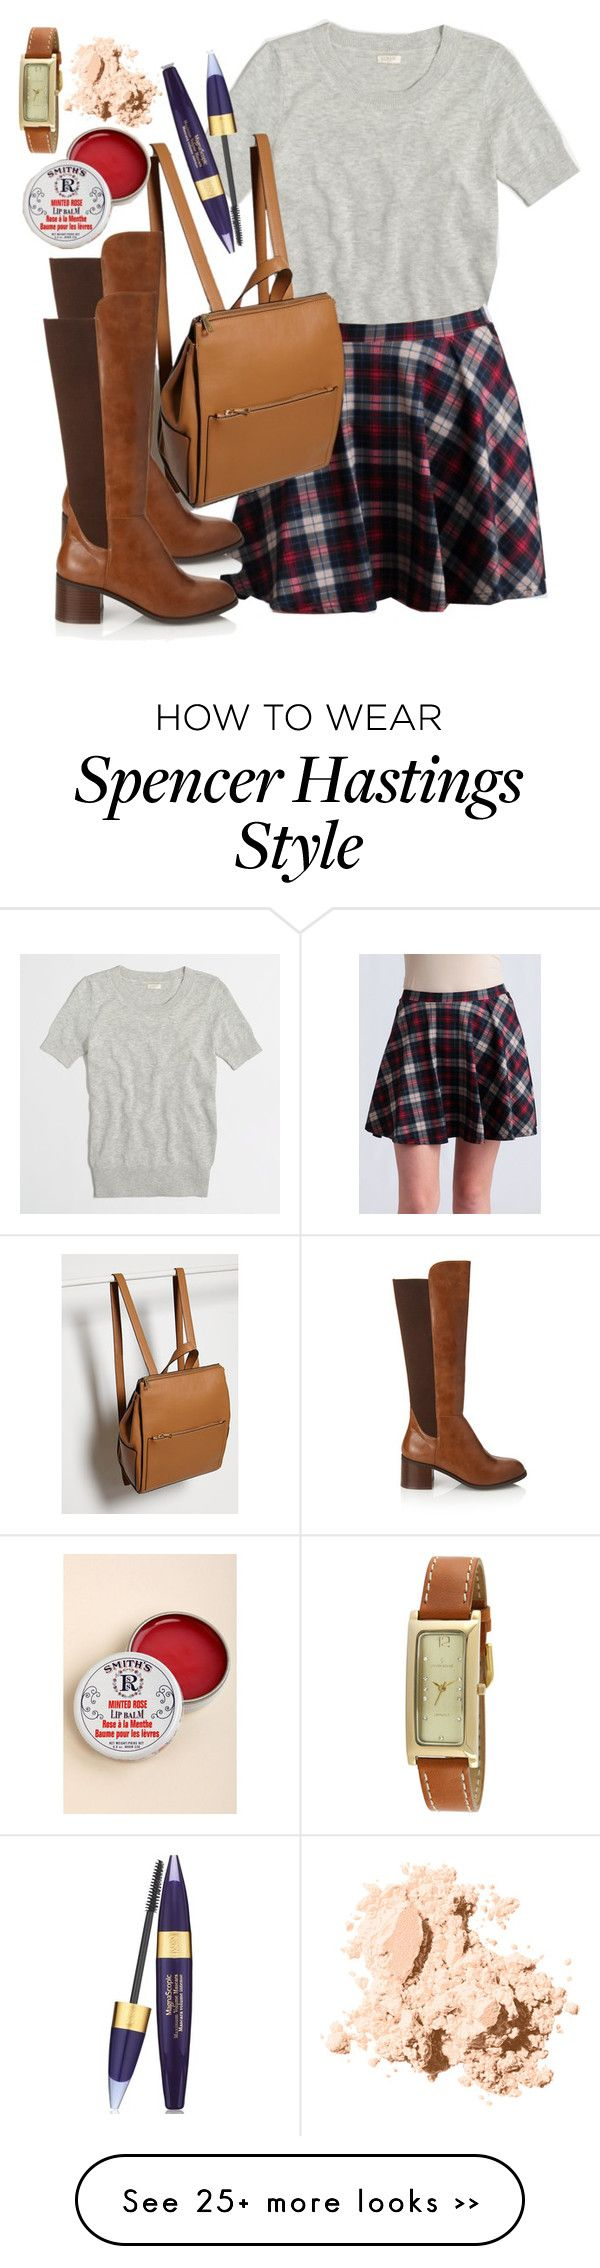 """Spencer Hastings inspired outfit with requested skirt"" by liarsstyle on Polyvore"